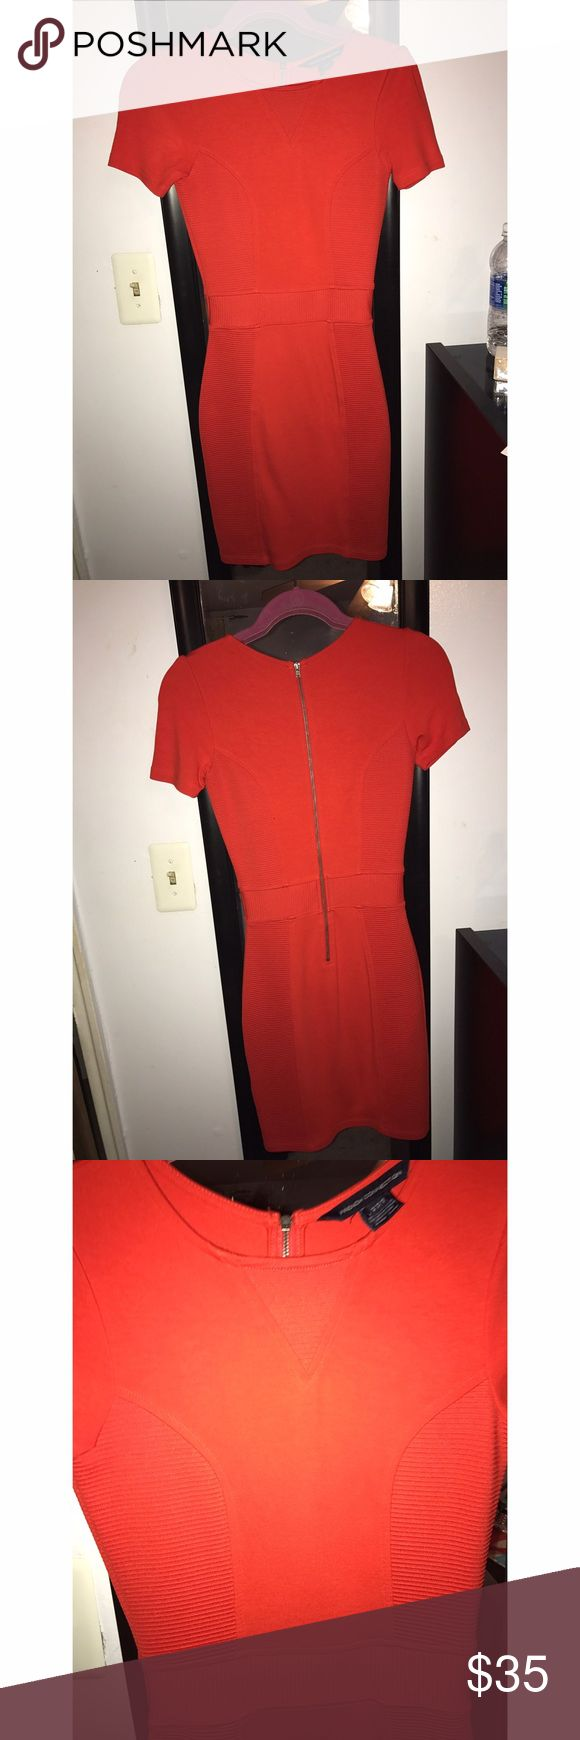 Red French Connection Bodycon Dress Red French Connection Bodycon Dress with ribbed sides. Worn twice, beautiful color. French Connection Dresses Mini